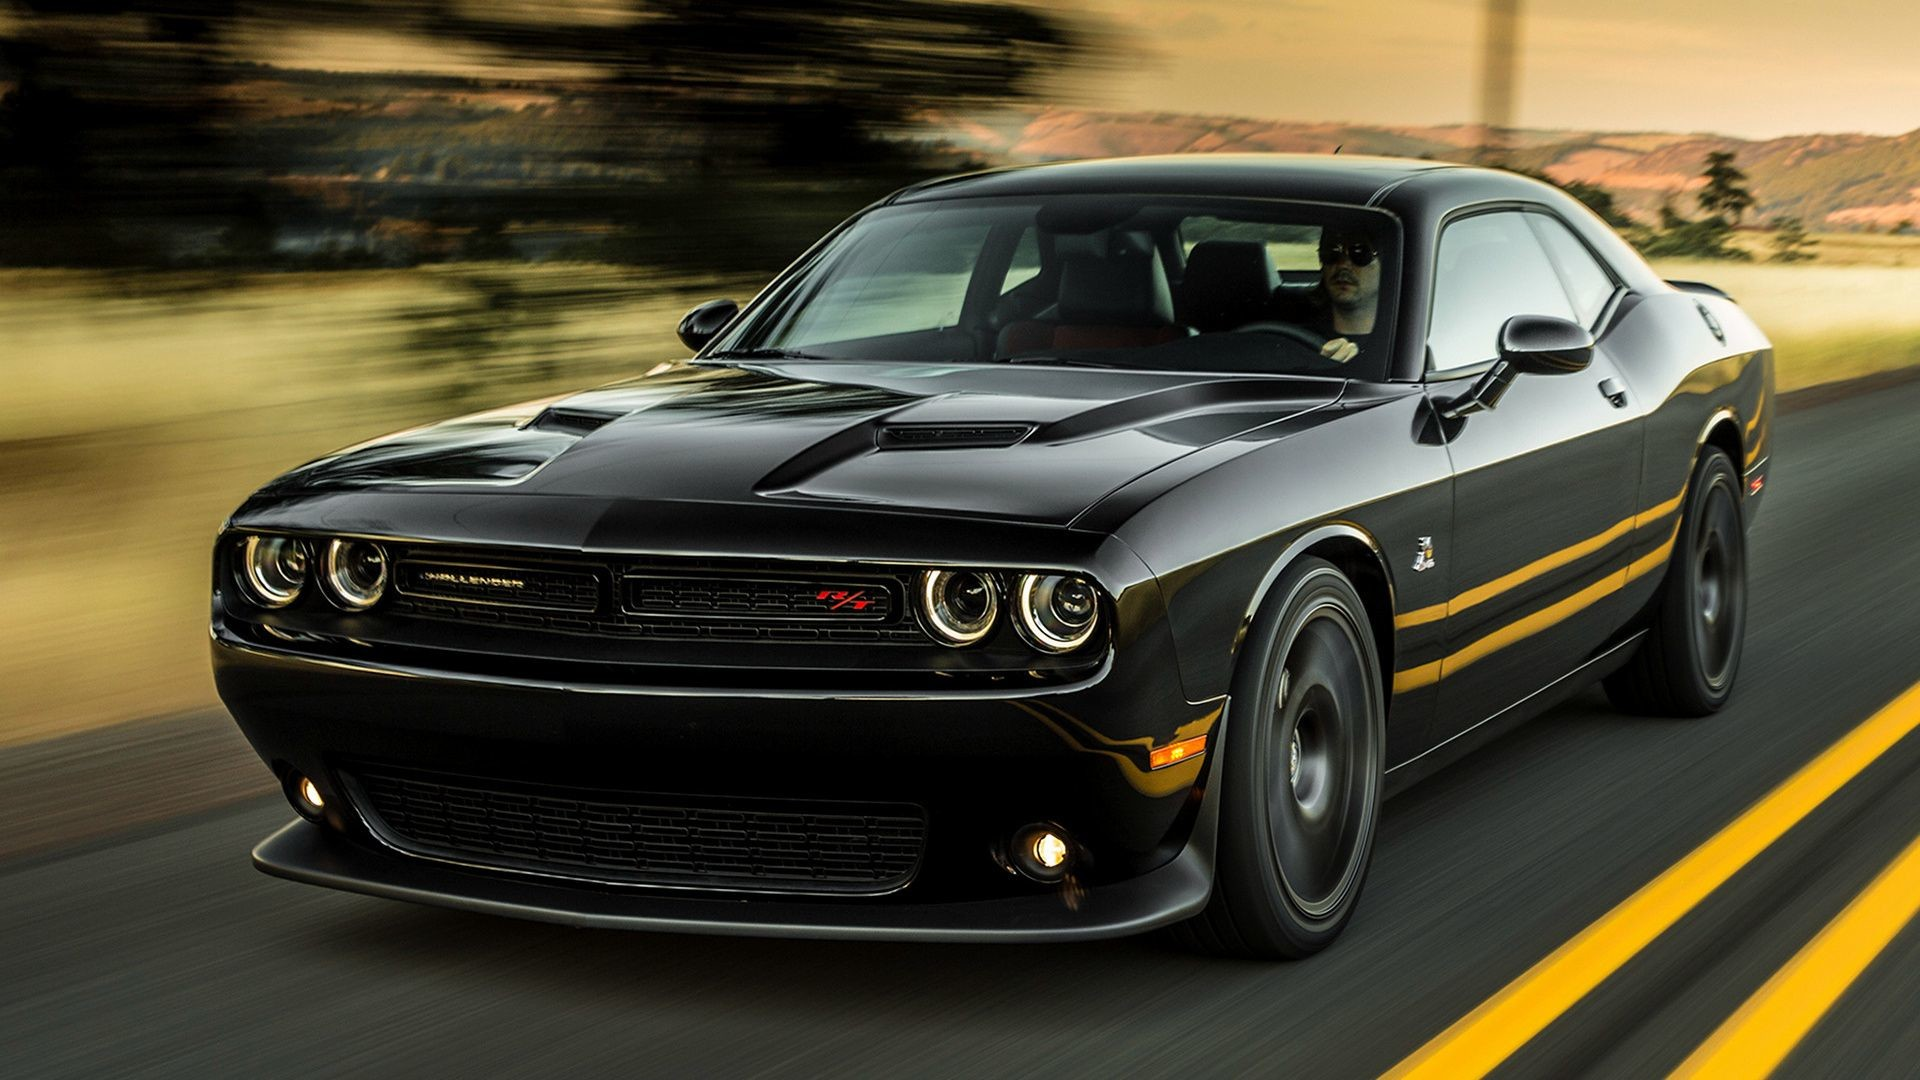 2018 Dodge Challenger Black Wallpapers Wallpapertag